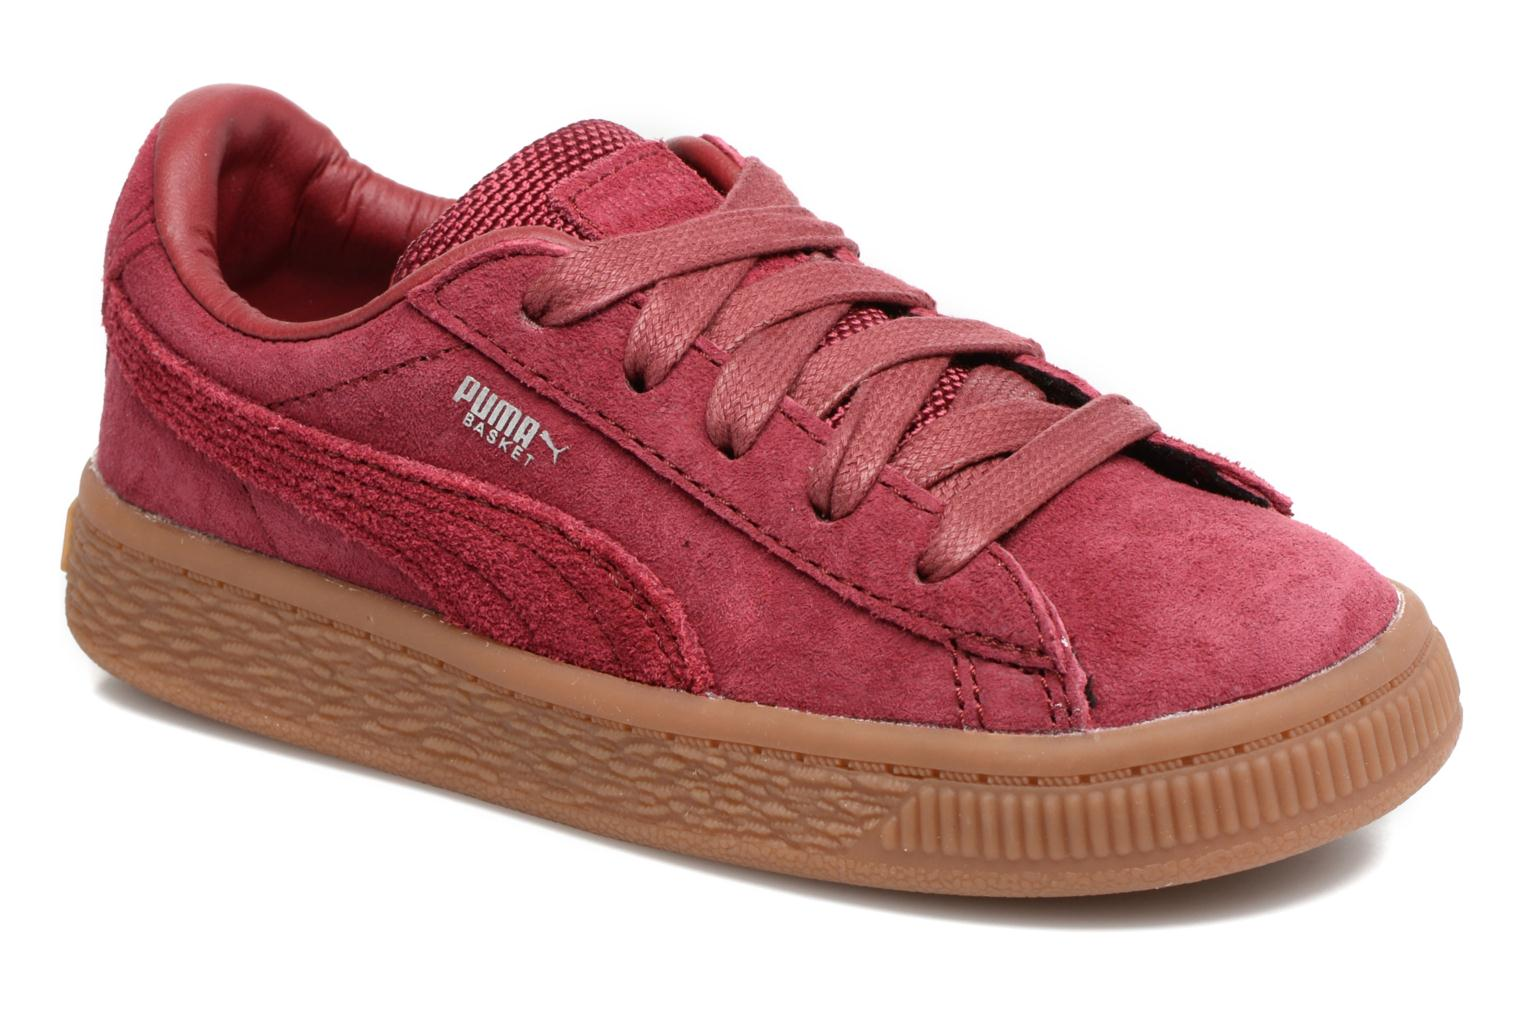 INF BASKET CLASSIC WEATH Red